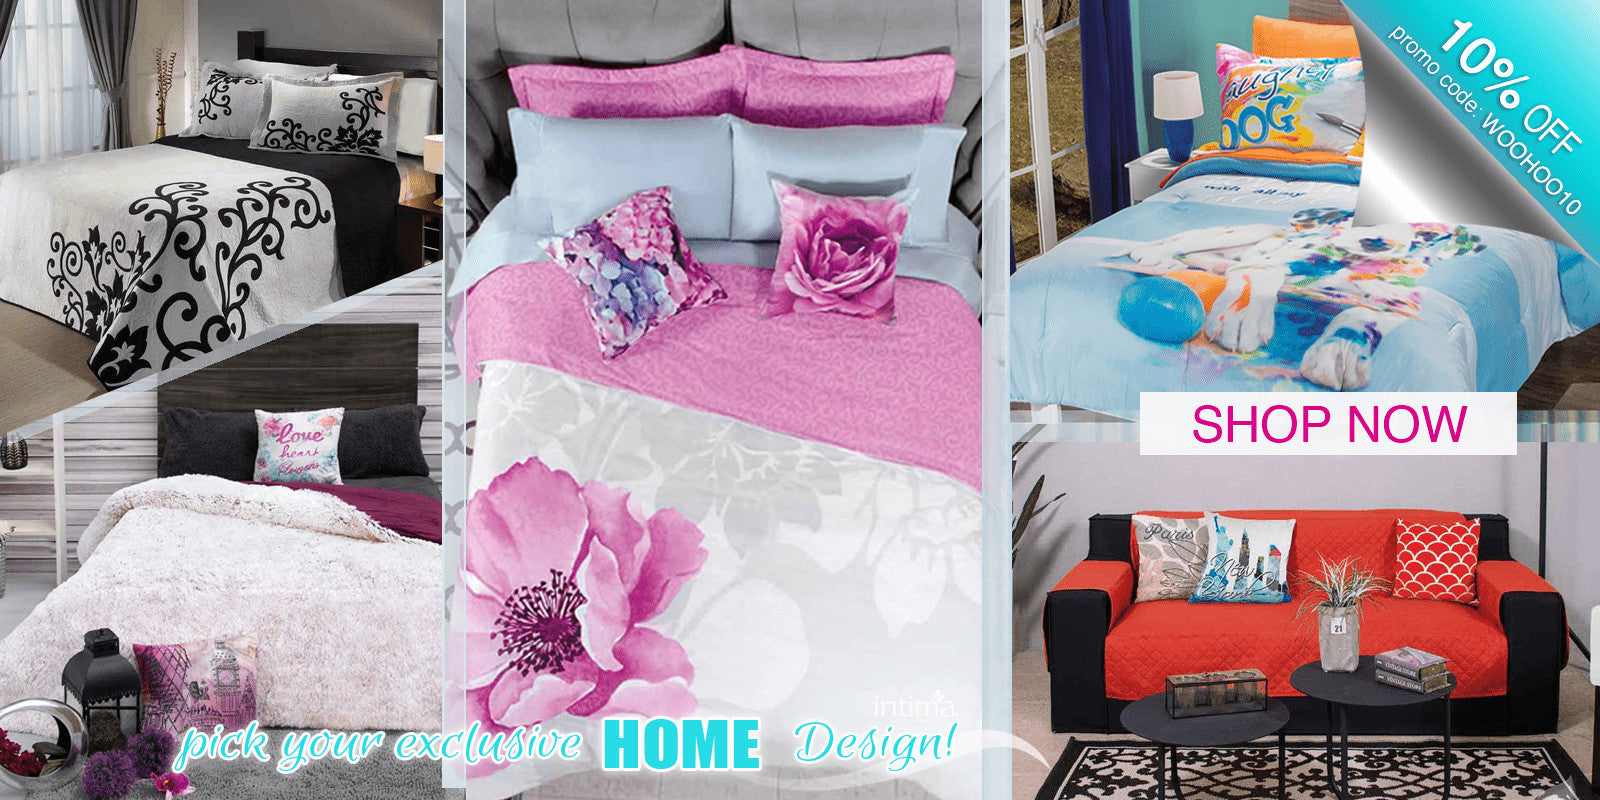 LAPG Intima Home Exclusive Designs